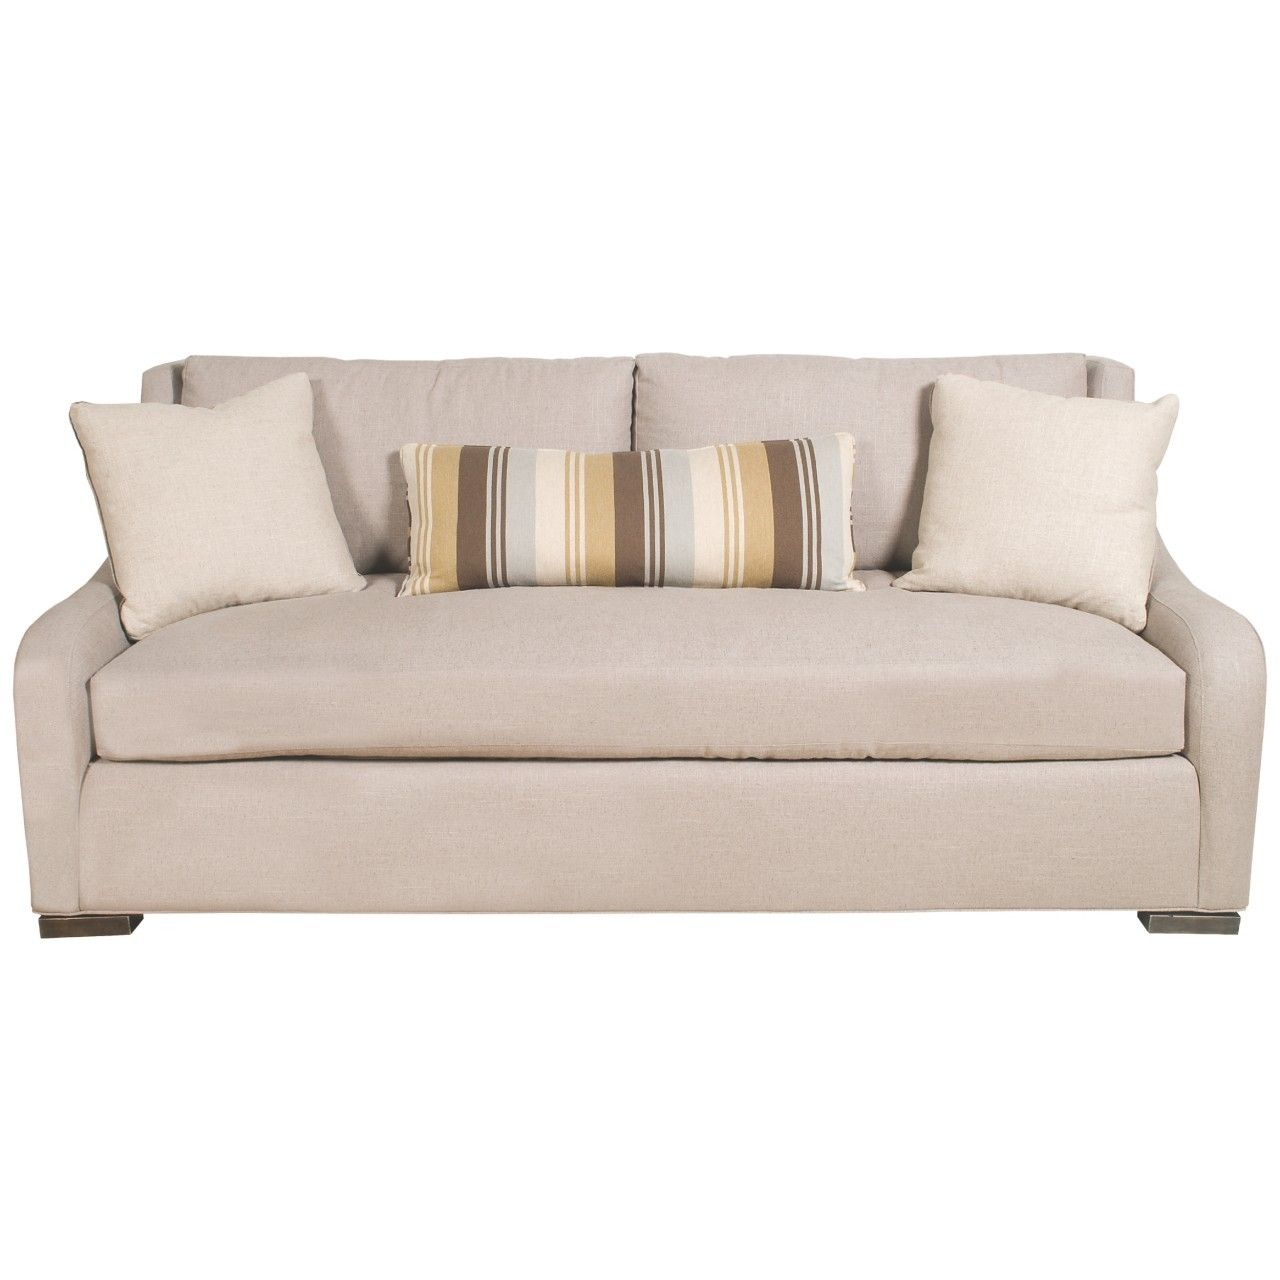 single cushion sofa pros and cons mint green cover with one fresh 36 on living